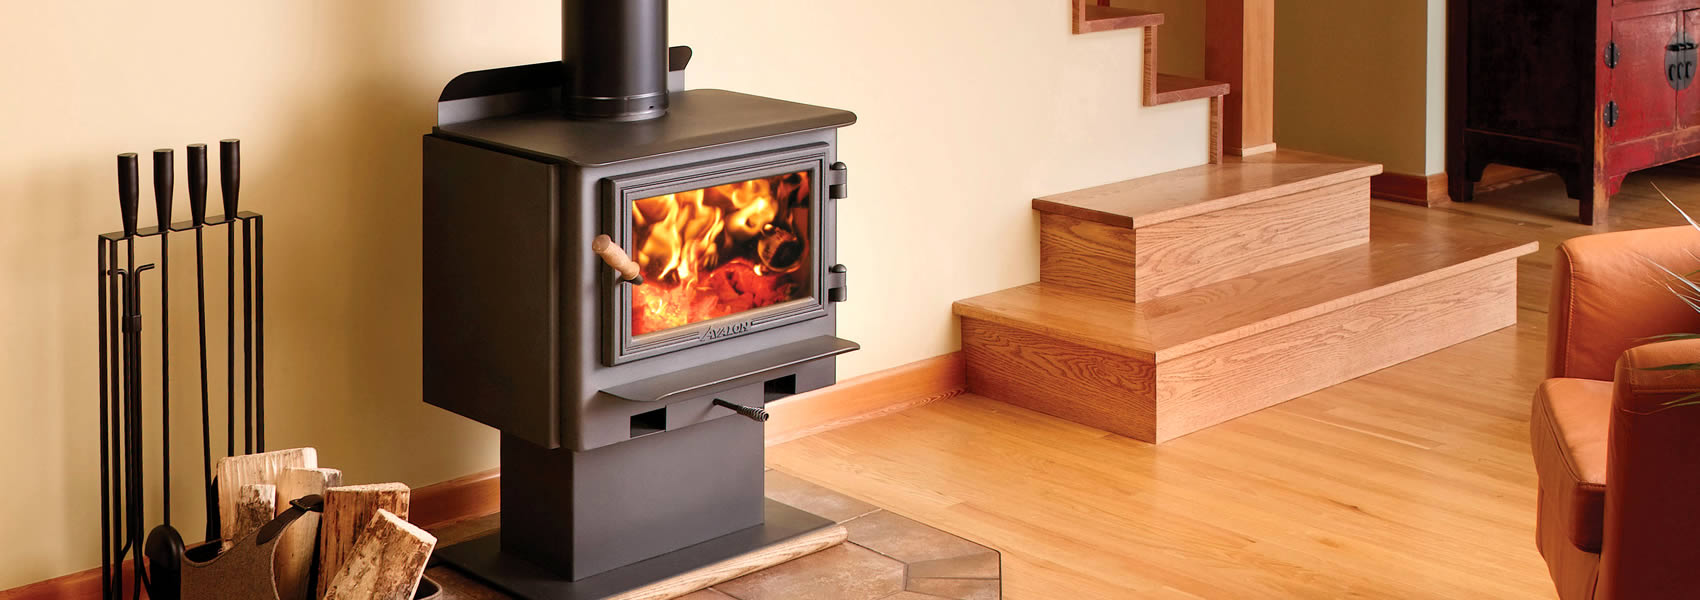 avalon gas stove